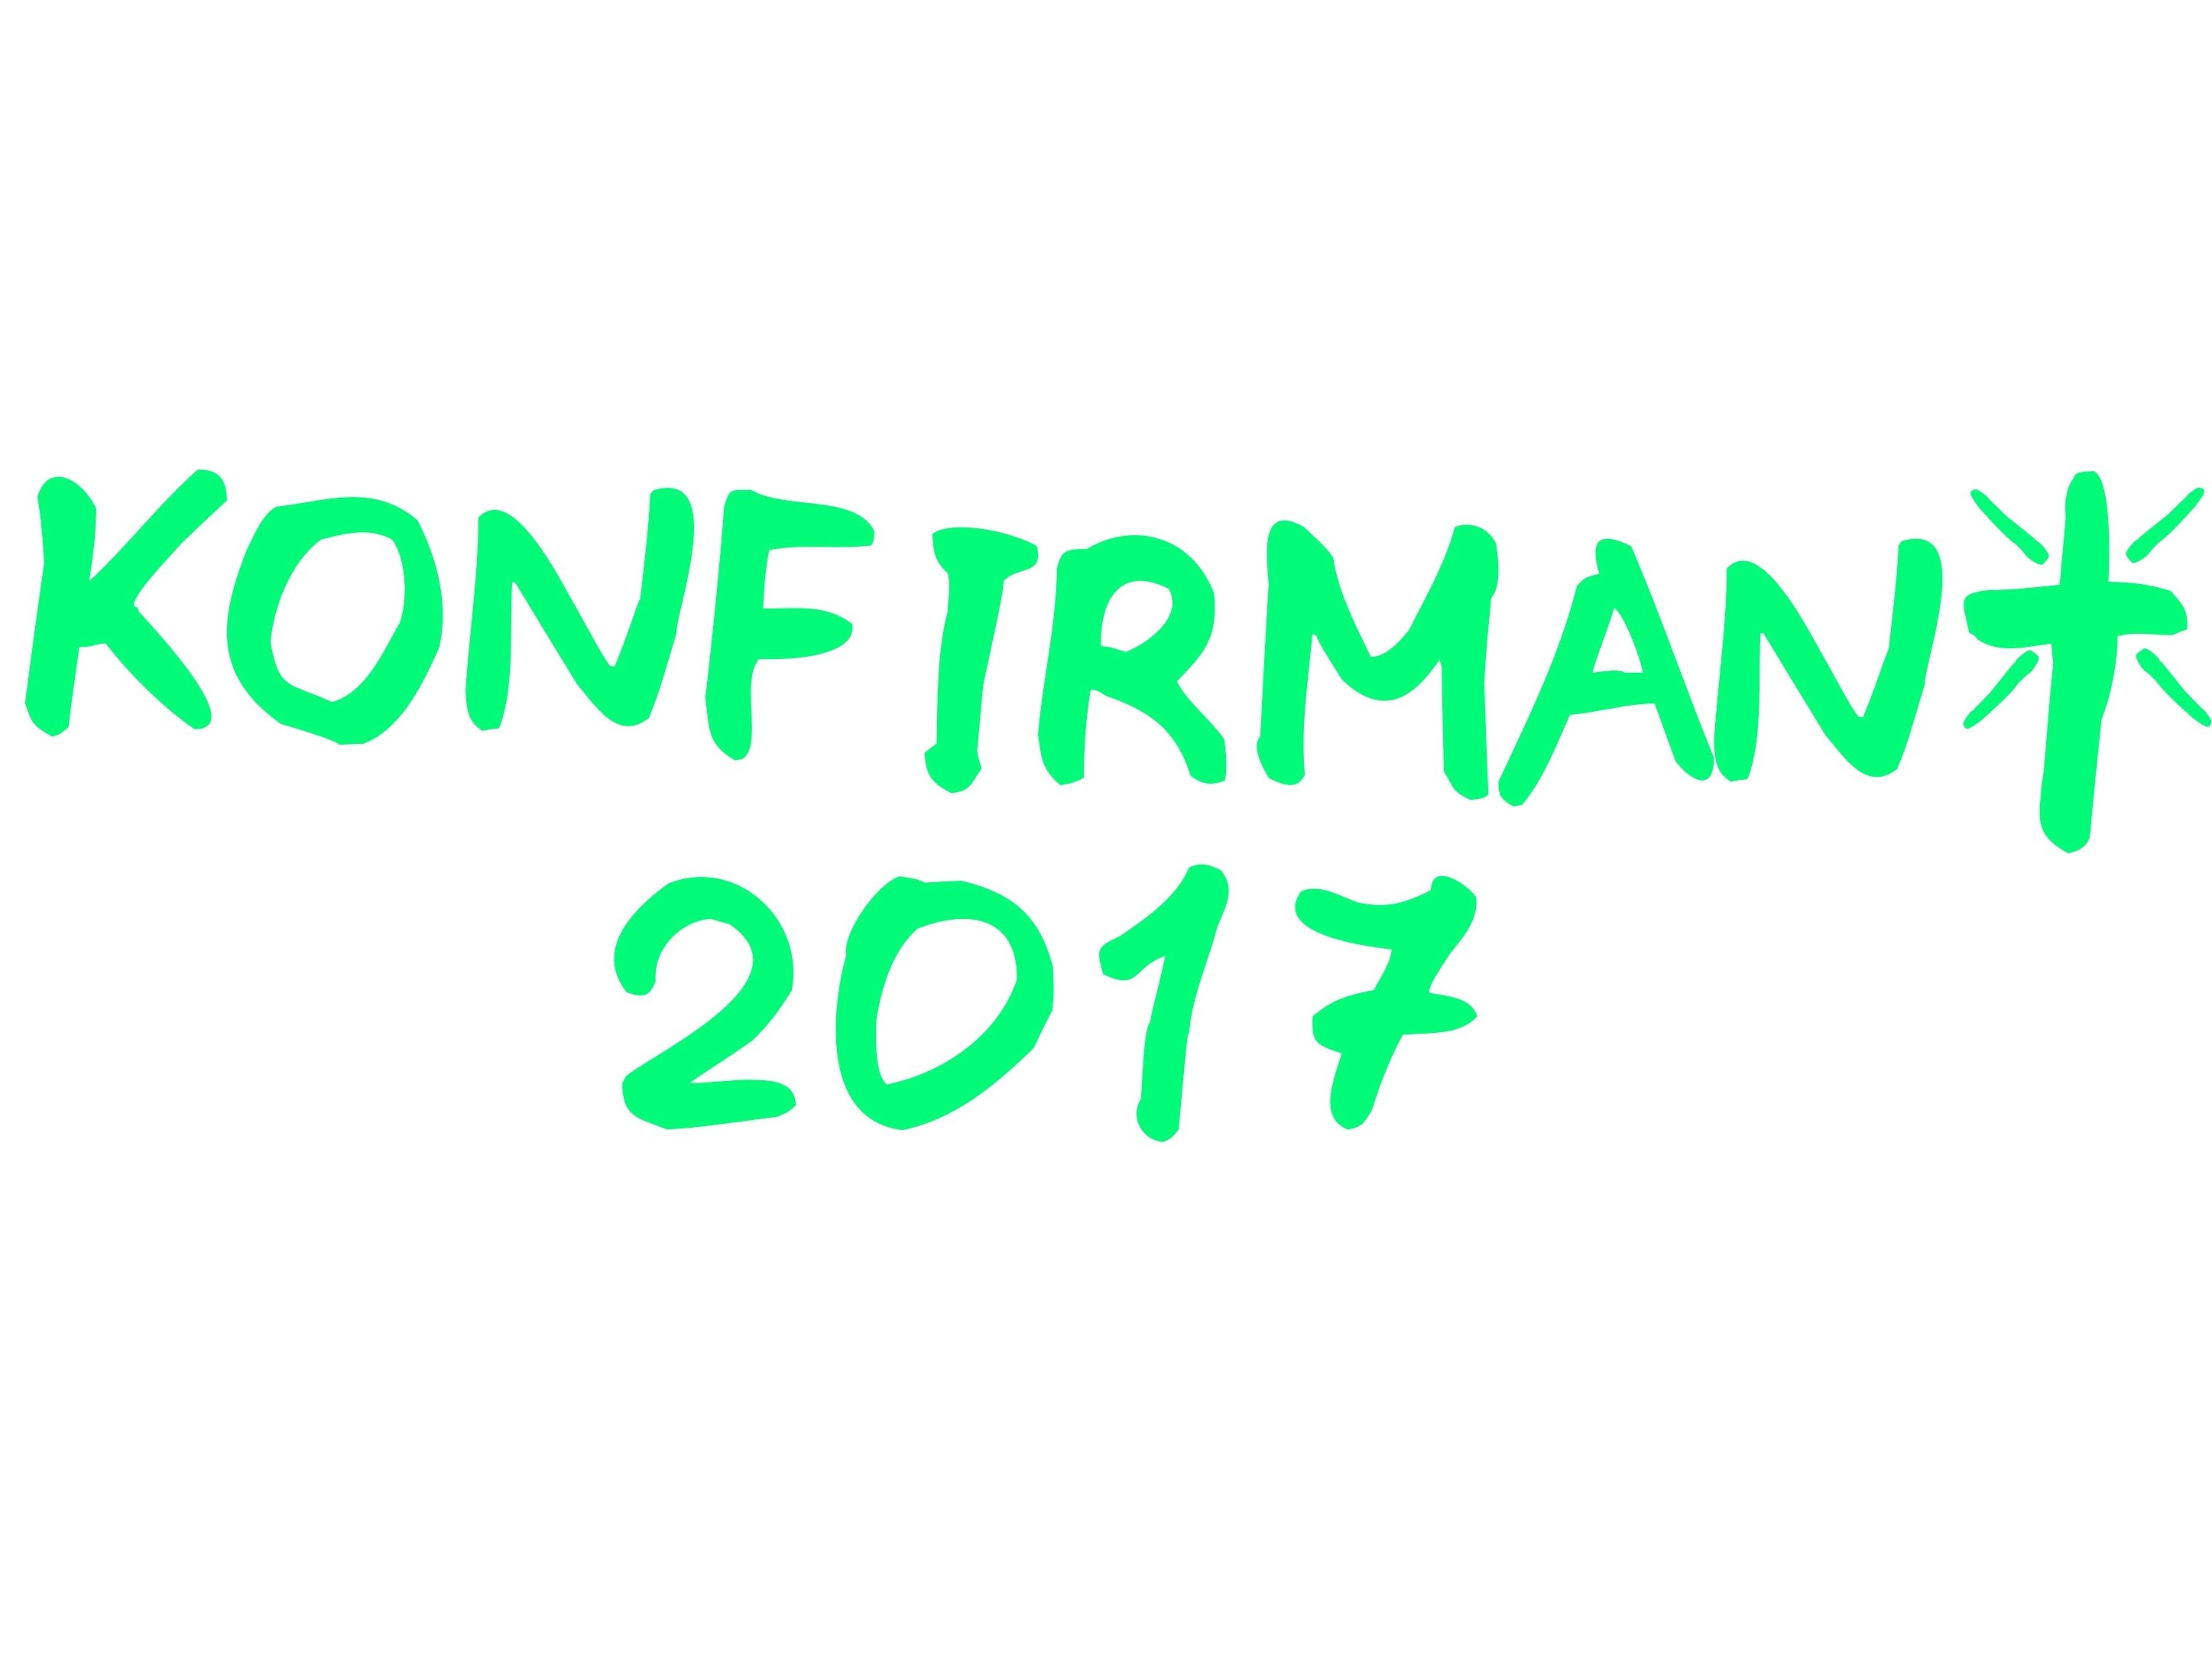 konfirmant 2017 logo2.jpg